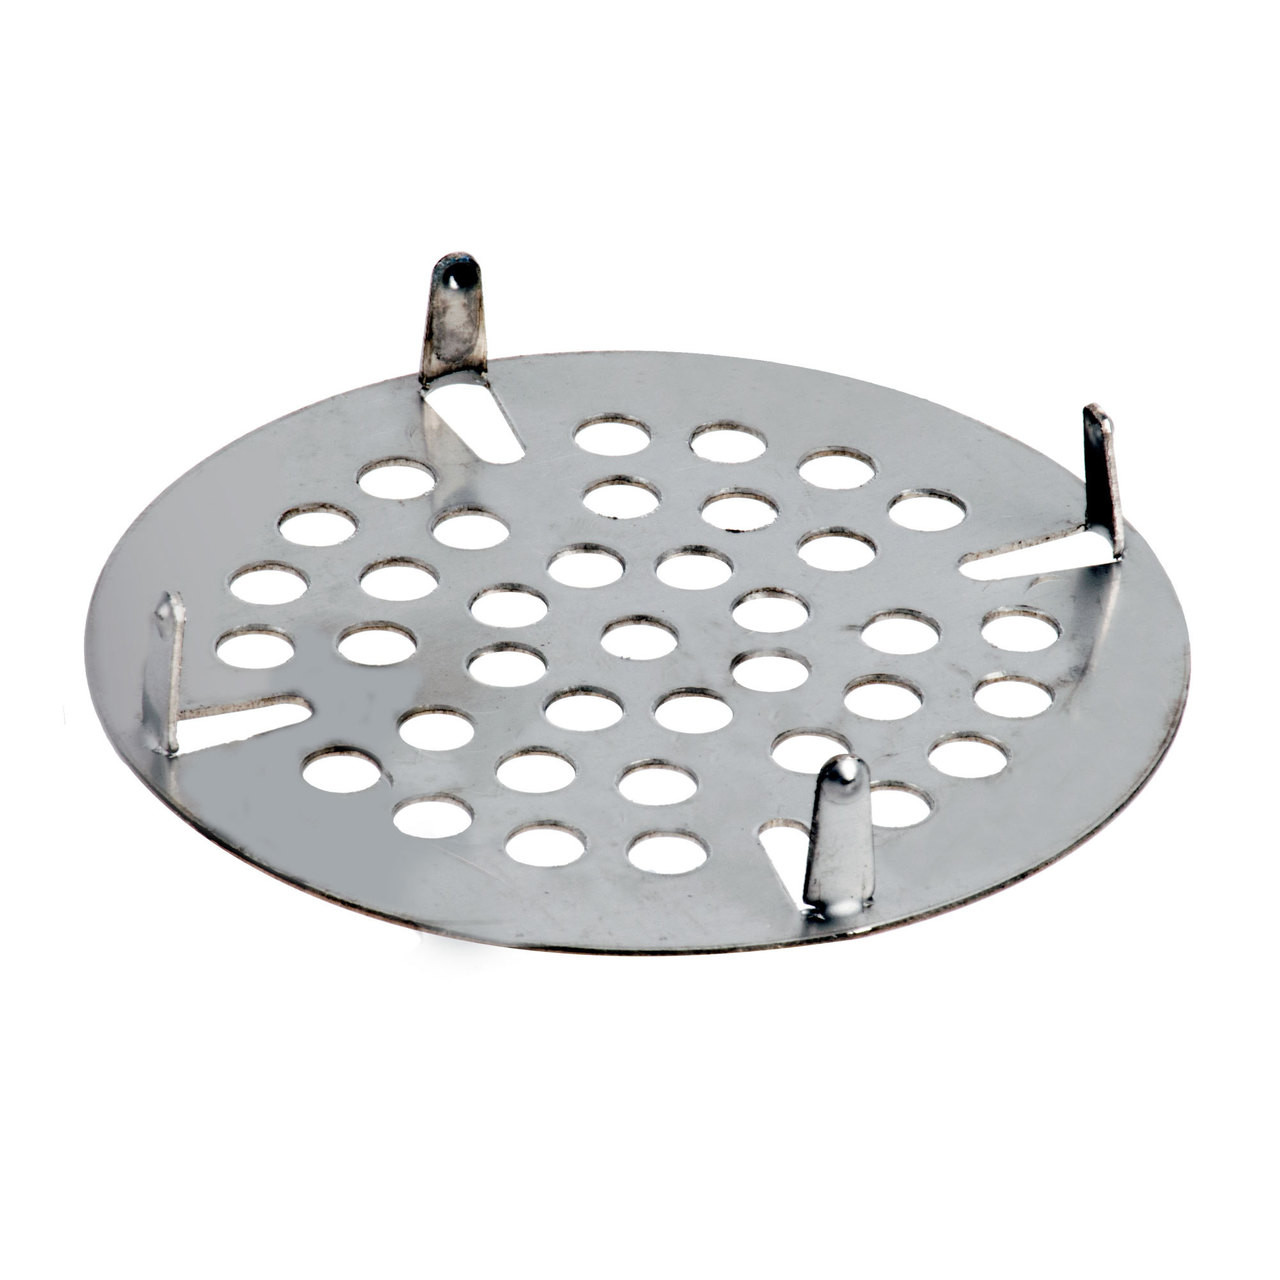 3 1/2 inch Flat Strainer for Kitchen Sink Drain Opening